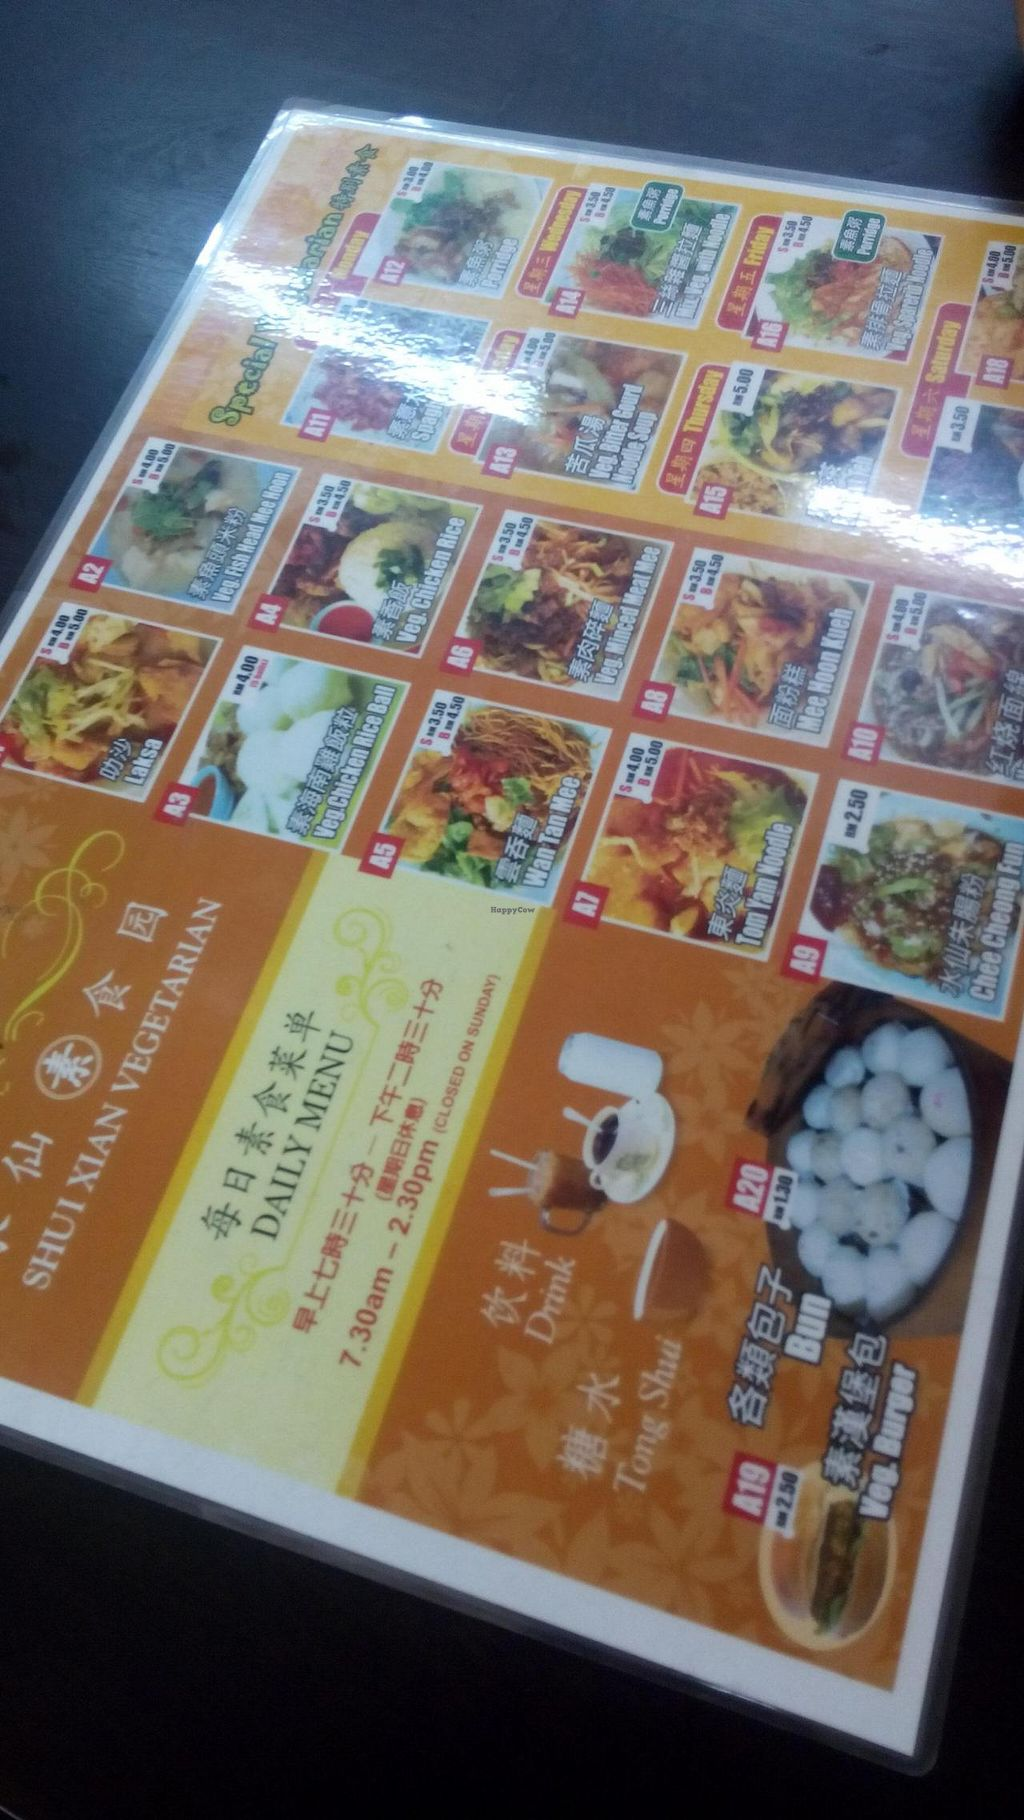 """Photo of Shui Xian Su Shi Yuan  by <a href=""""/members/profile/clary"""">clary</a> <br/>menu <br/> September 5, 2014  - <a href='/contact/abuse/image/32914/79160'>Report</a>"""